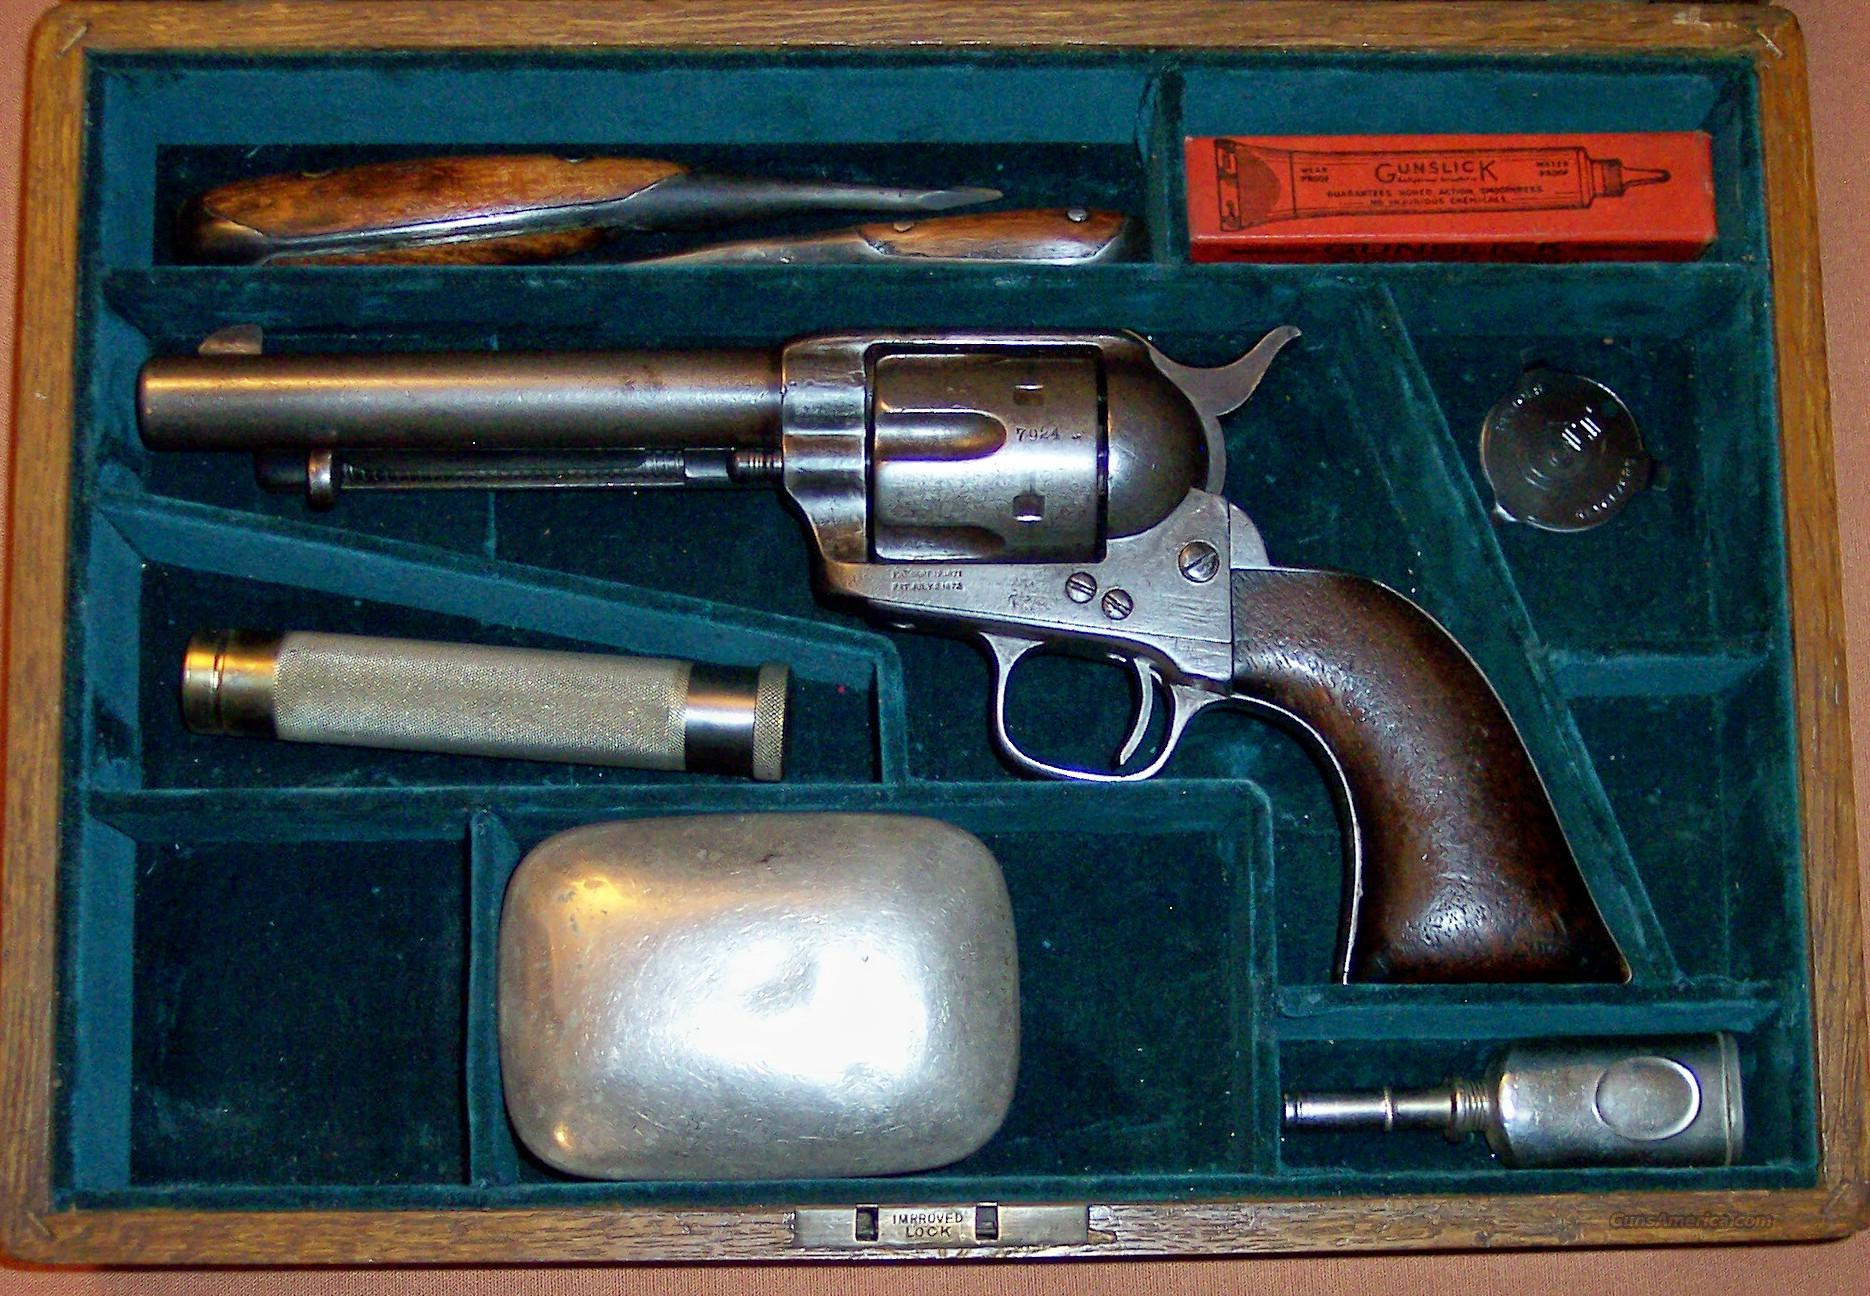 PRICE REDUCED - Colt Single Action Army,  .45 Eley Caliber, Shipped to London, 1876, Cased  Guns > Pistols > Colt Single Action Revolvers - 1st Gen.